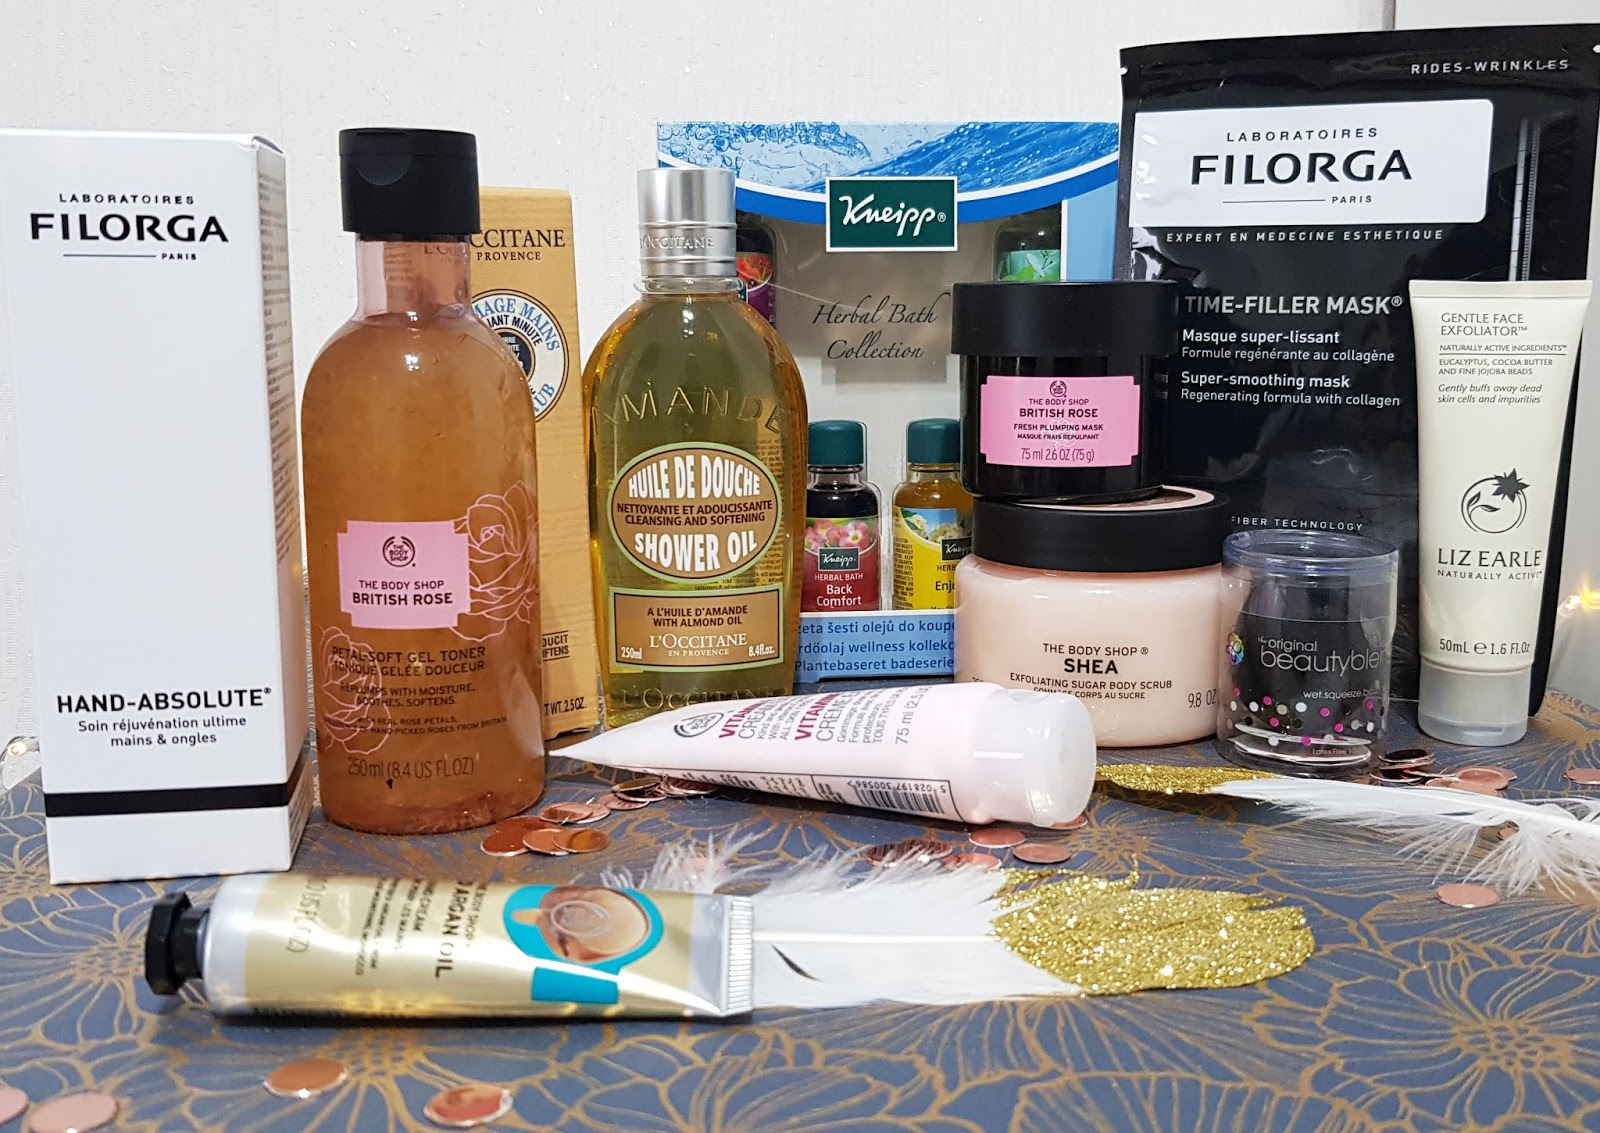 Is This Mutton? blog reviews a bumper haul of Christmas beauty products from brands including Filorga, Laura Mercier and the Body Shop. Plus the weekly beauty and fashion bloggers link up, #WowOnWednesday.